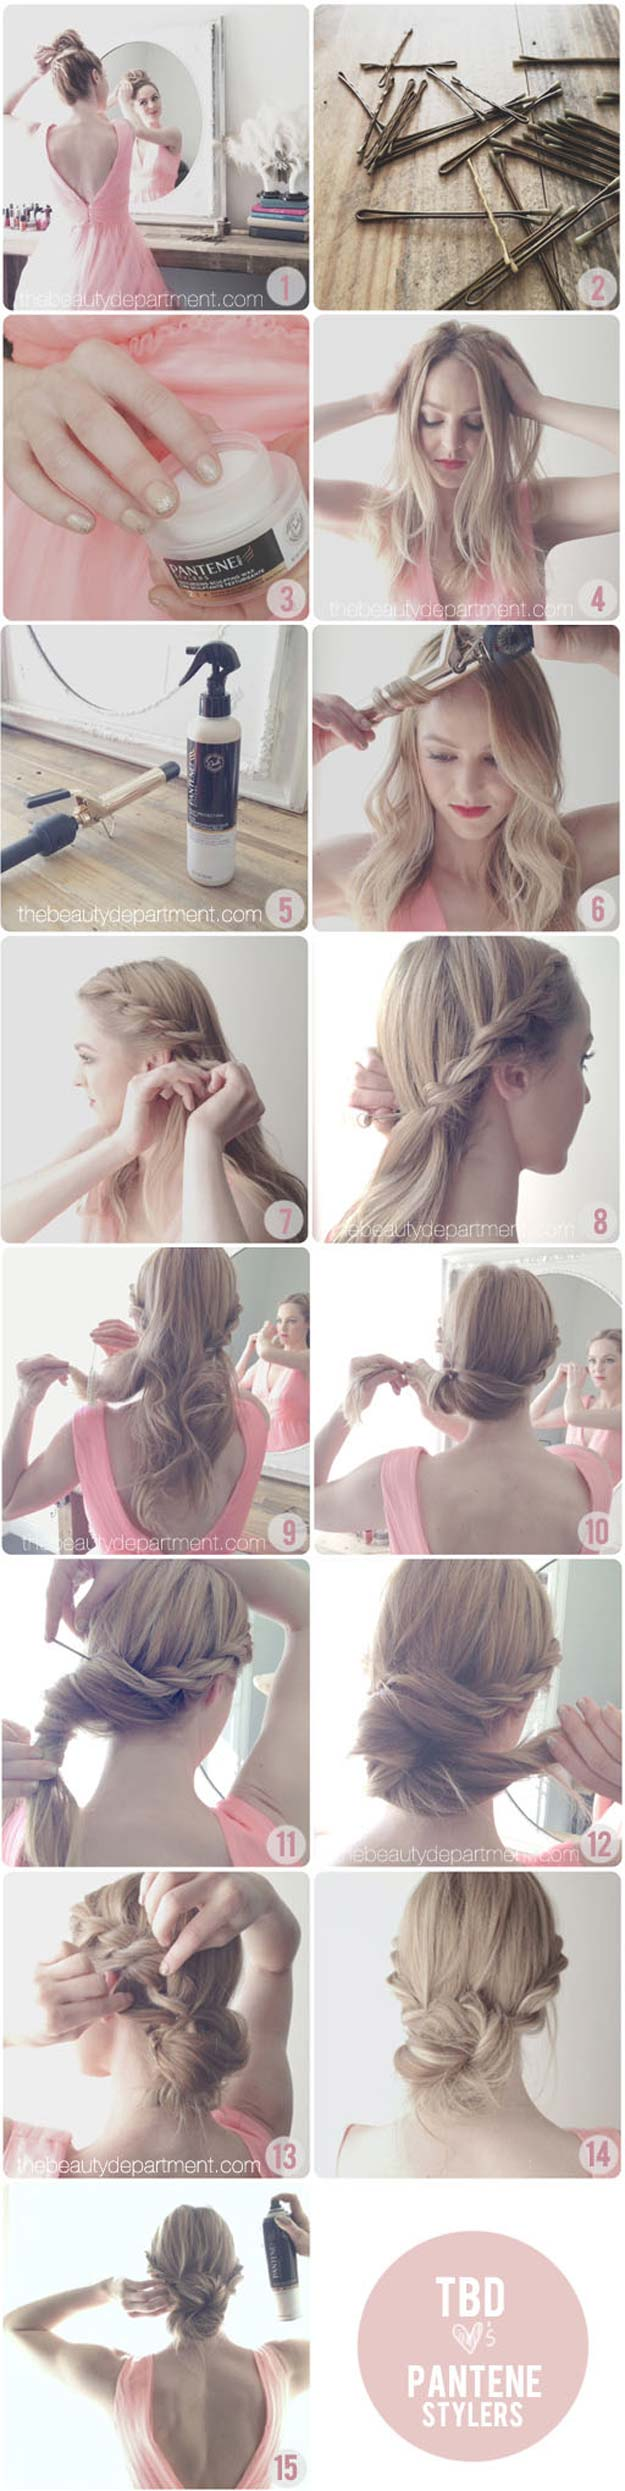 Best Hair Braiding Tutorials - Rop Braid Chignon - Easy Step by Step Tutorials for Braids - How To Braid Fishtail, French Braids, Flower Crown, Side Braids, Cornrows, Updos - Cool Braided Hairstyles for Girls, Teens and Women - School, Day and Evening, Boho, Casual and Formal Looks #hairstyles #braiding #braidingtutorials #diyhair